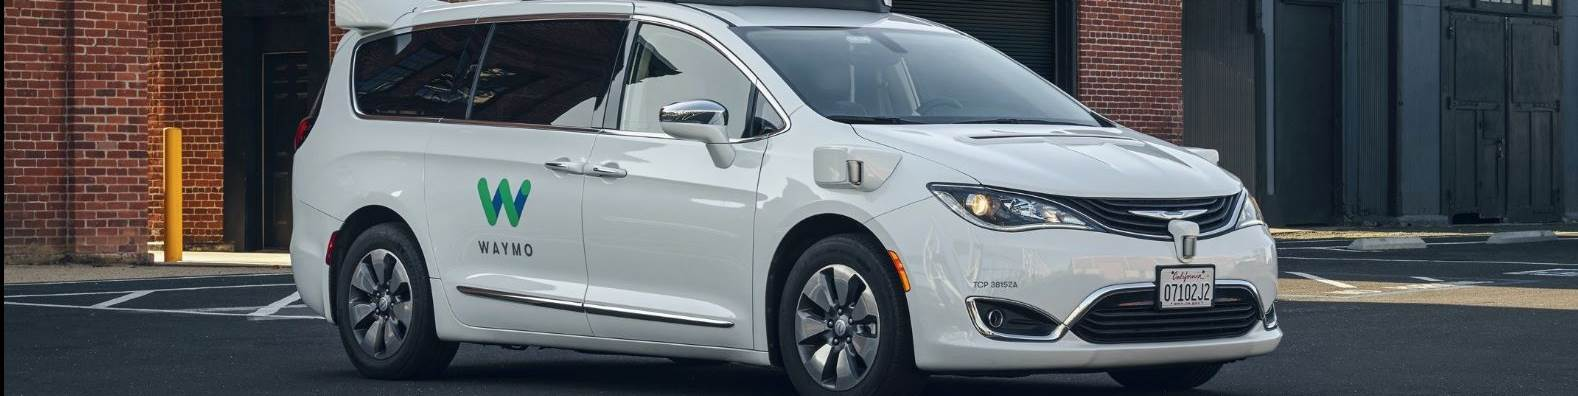 Waymo and FCA are expanding their partnership, which started four years ago with a self-driving prototype of the Pacifica hybrid minivan